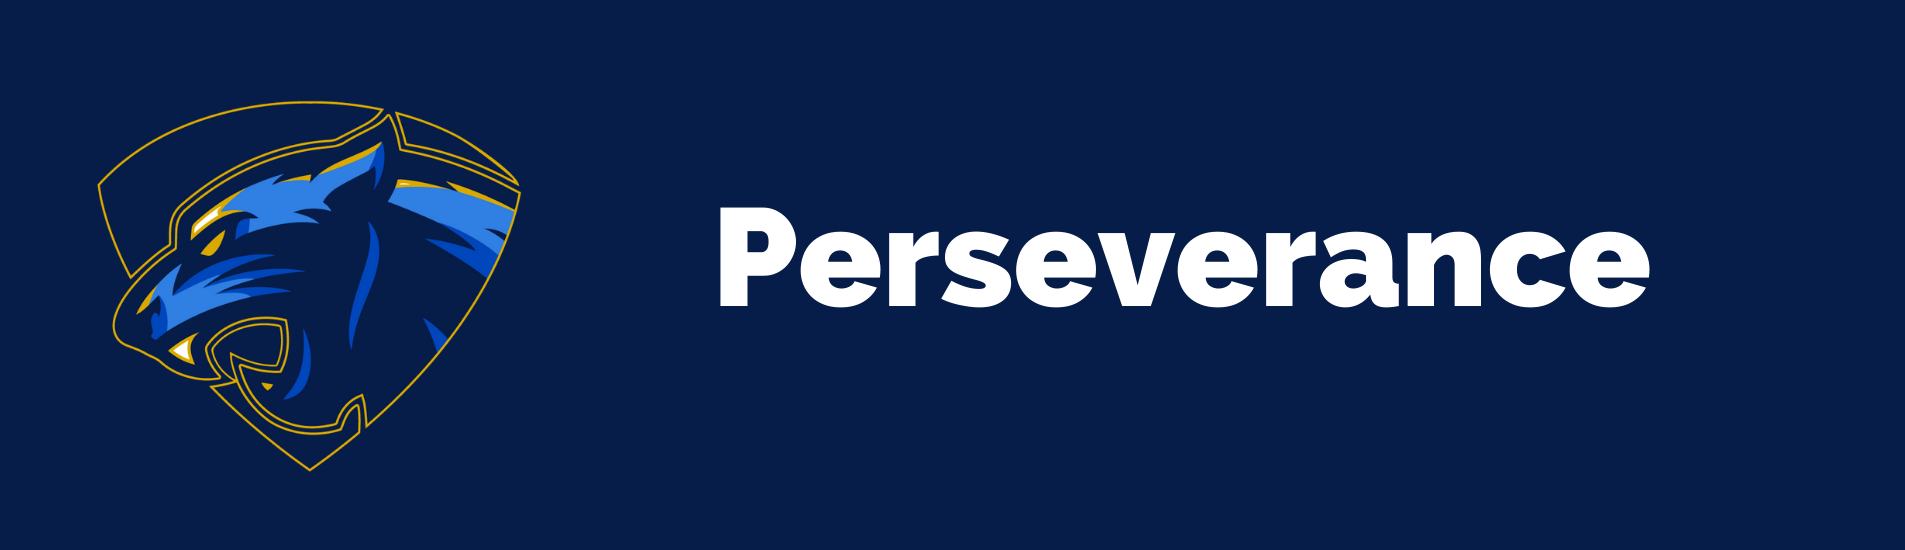 Perseverance value banner